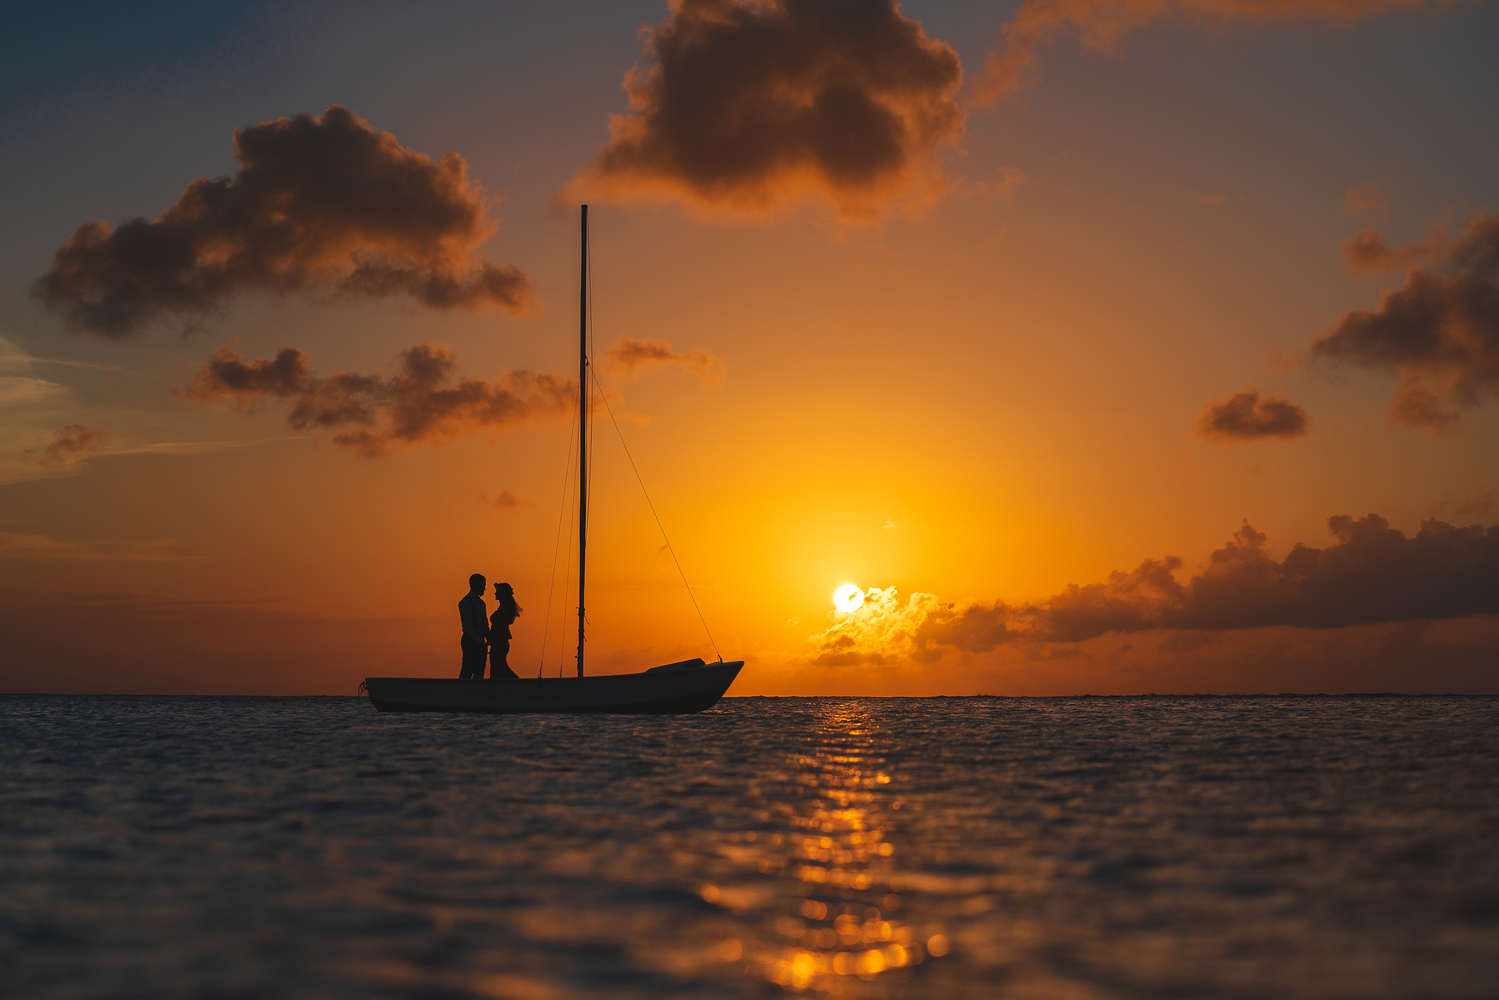 Lovers at Sunset by Carlos Garcia